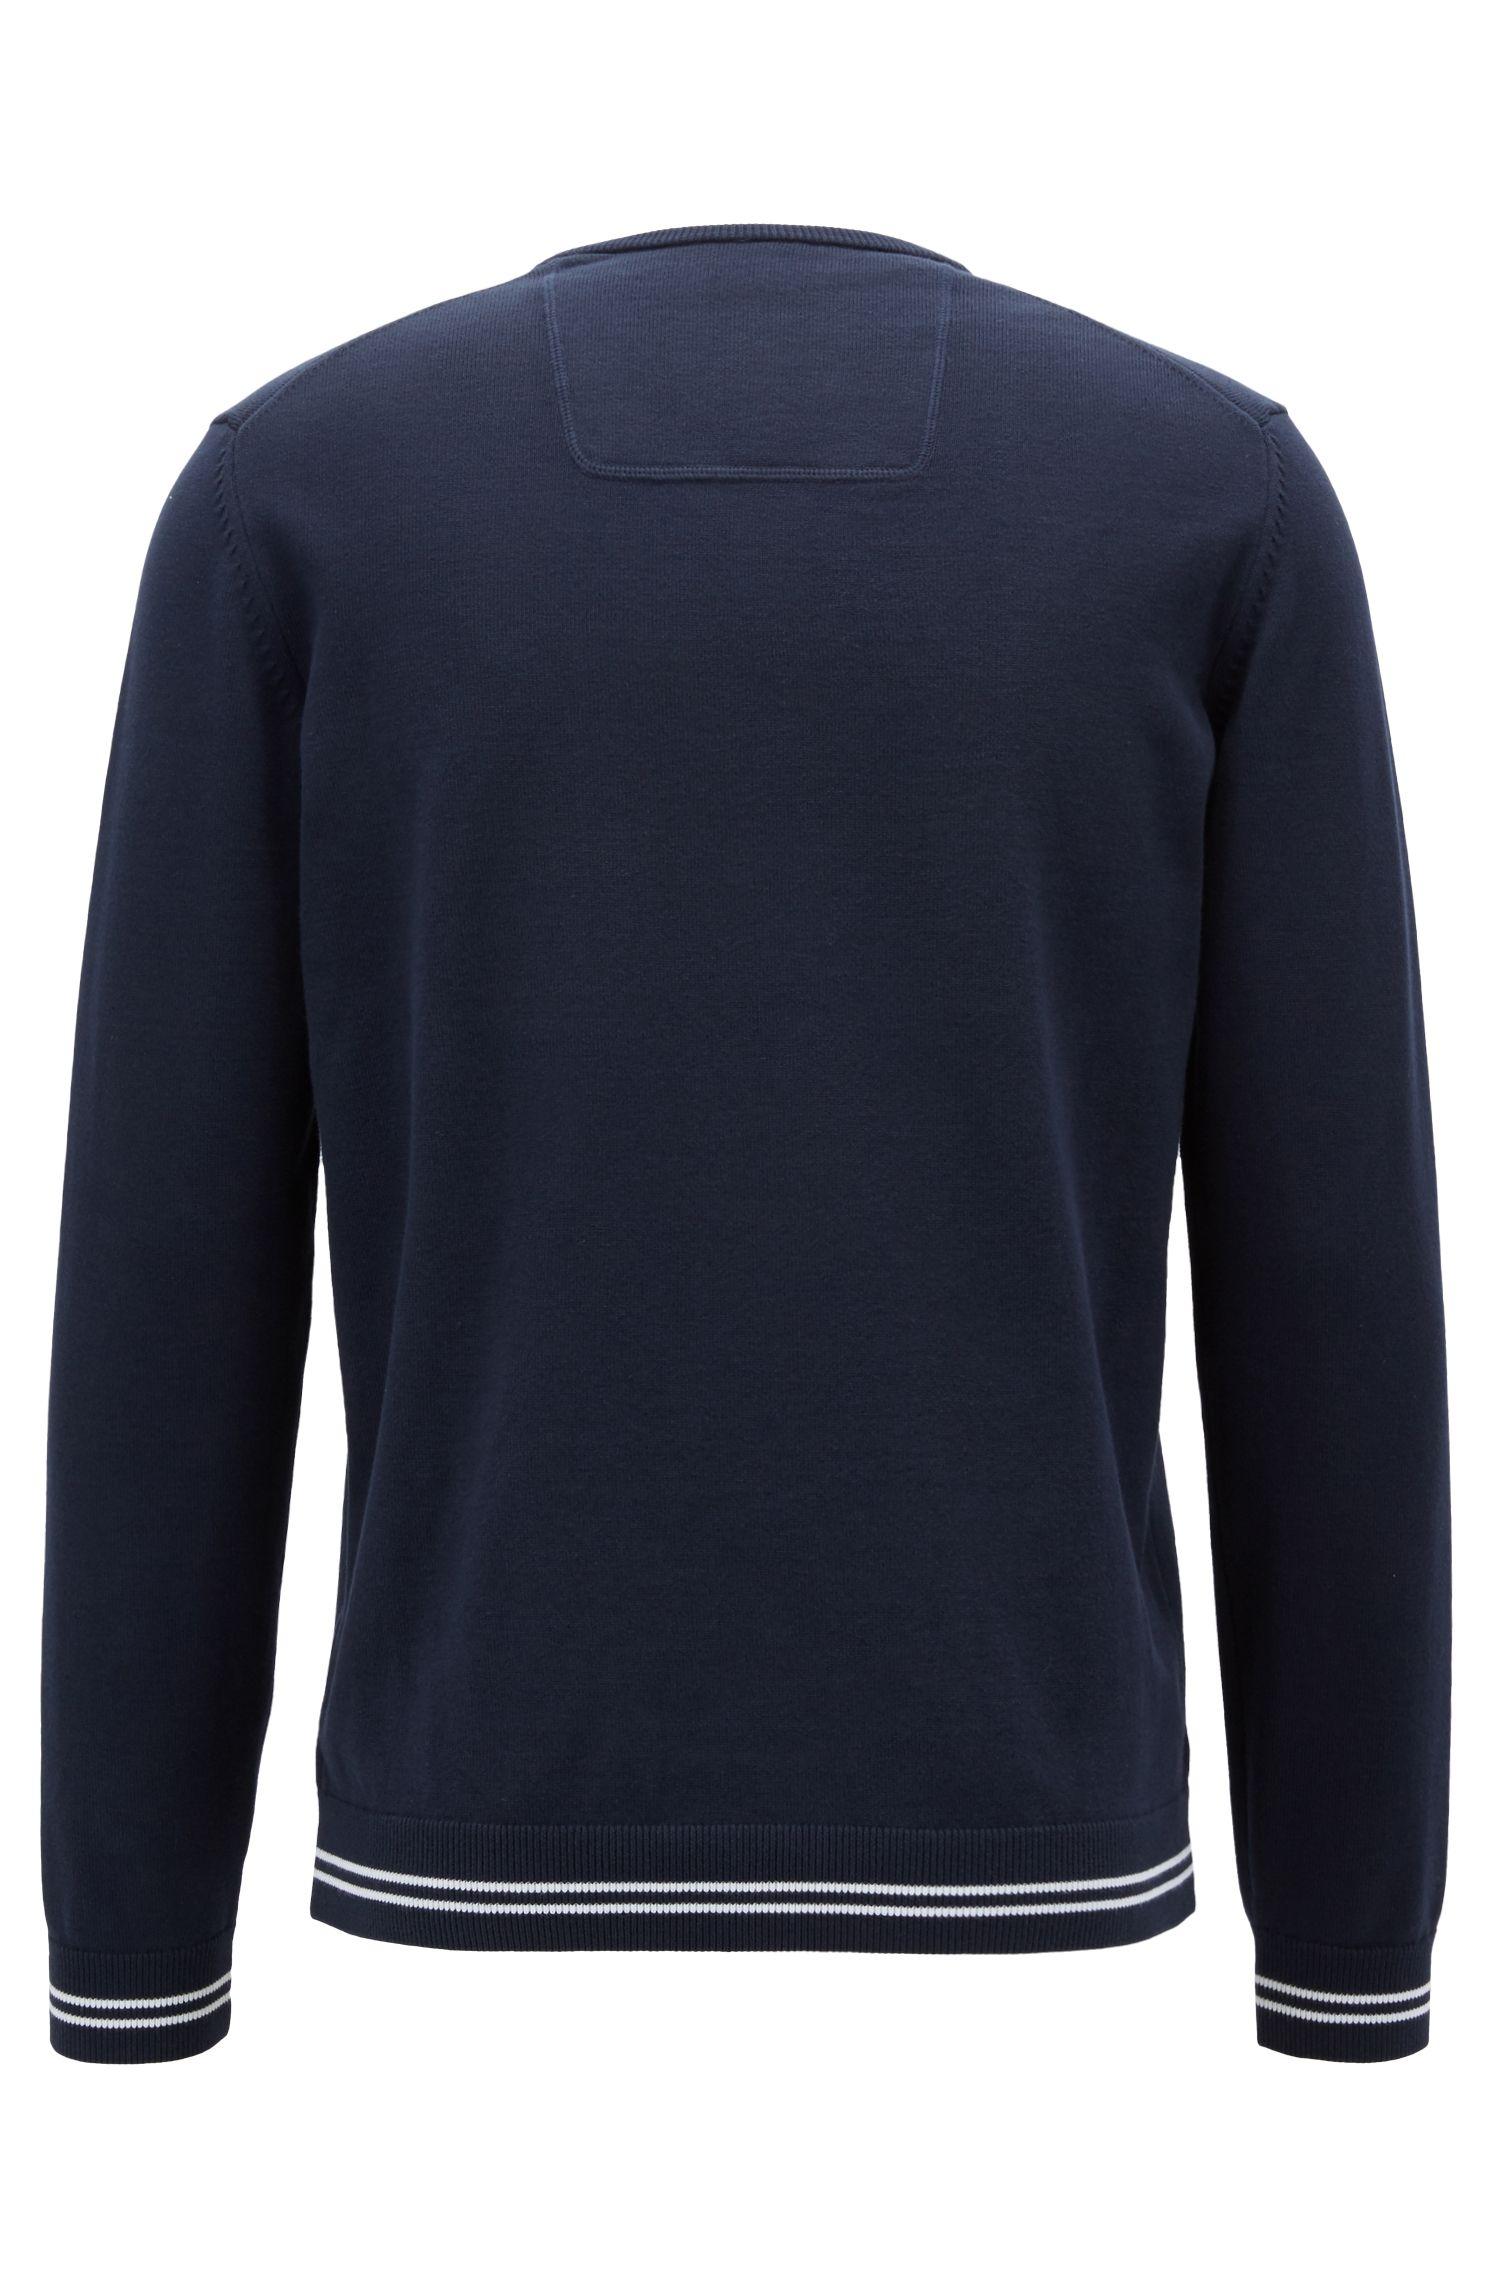 V-neck sweater in a cotton blend with tipping stripes, Dark Blue